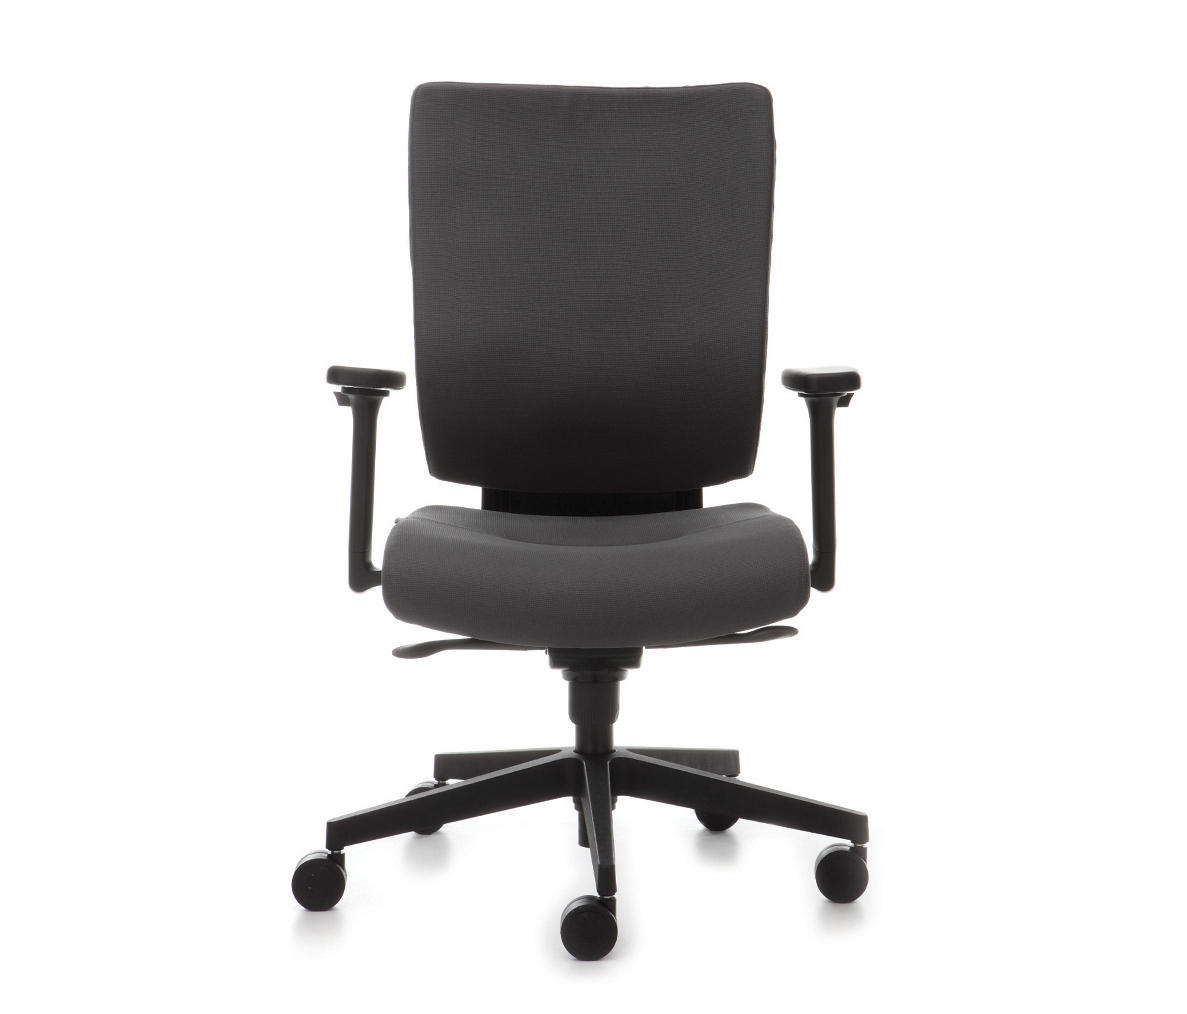 Svago Chair Svago Management Chairs From Ersa Architonic